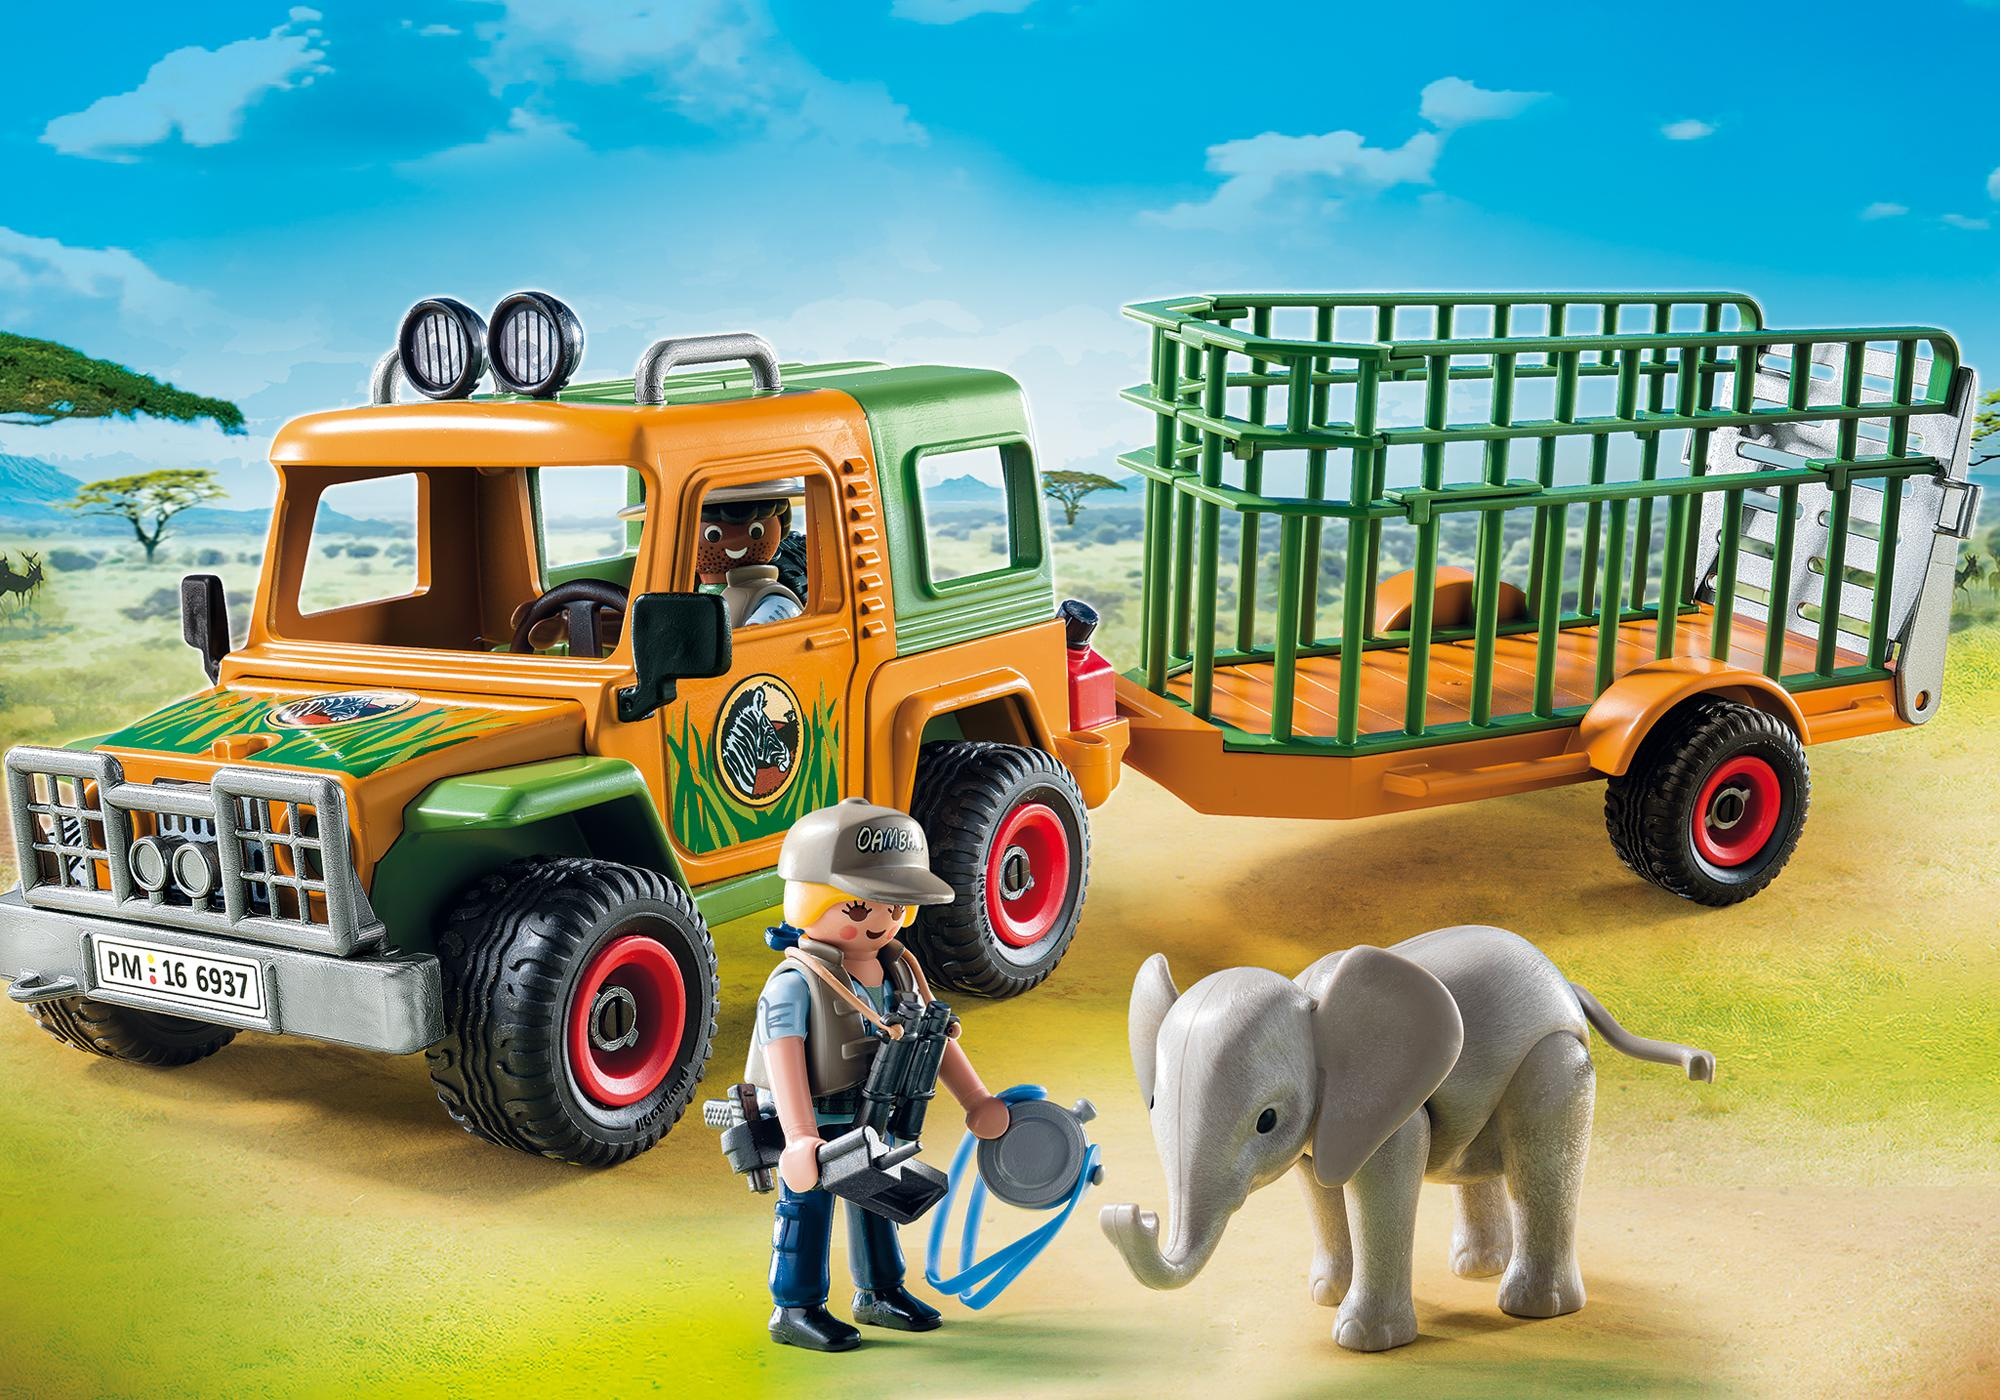 http://media.playmobil.com/i/playmobil/6937_product_detail